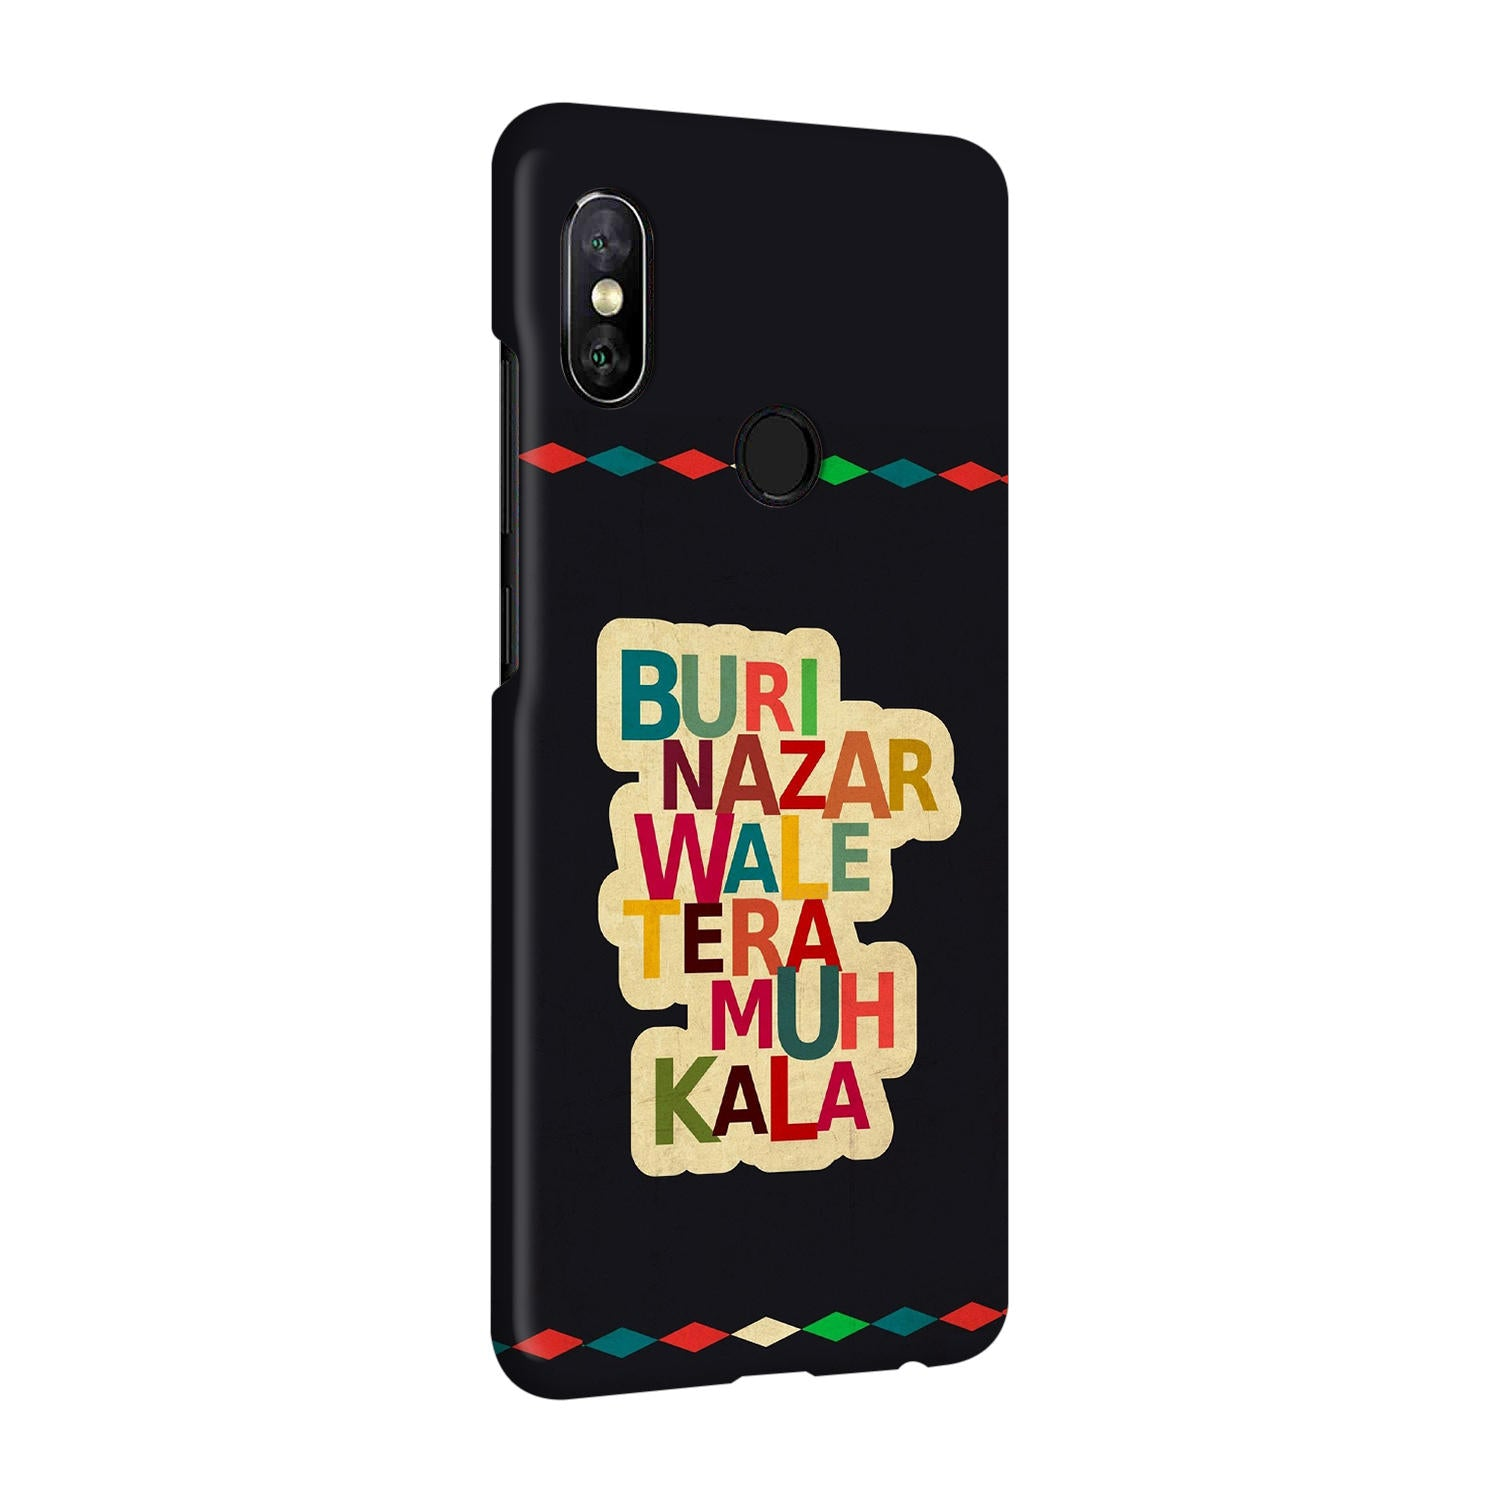 Buri Nazar Wale Tera Muh Kala Indian Typography RedMi Note 5 Pro Mobile Cover Case - MADANYU